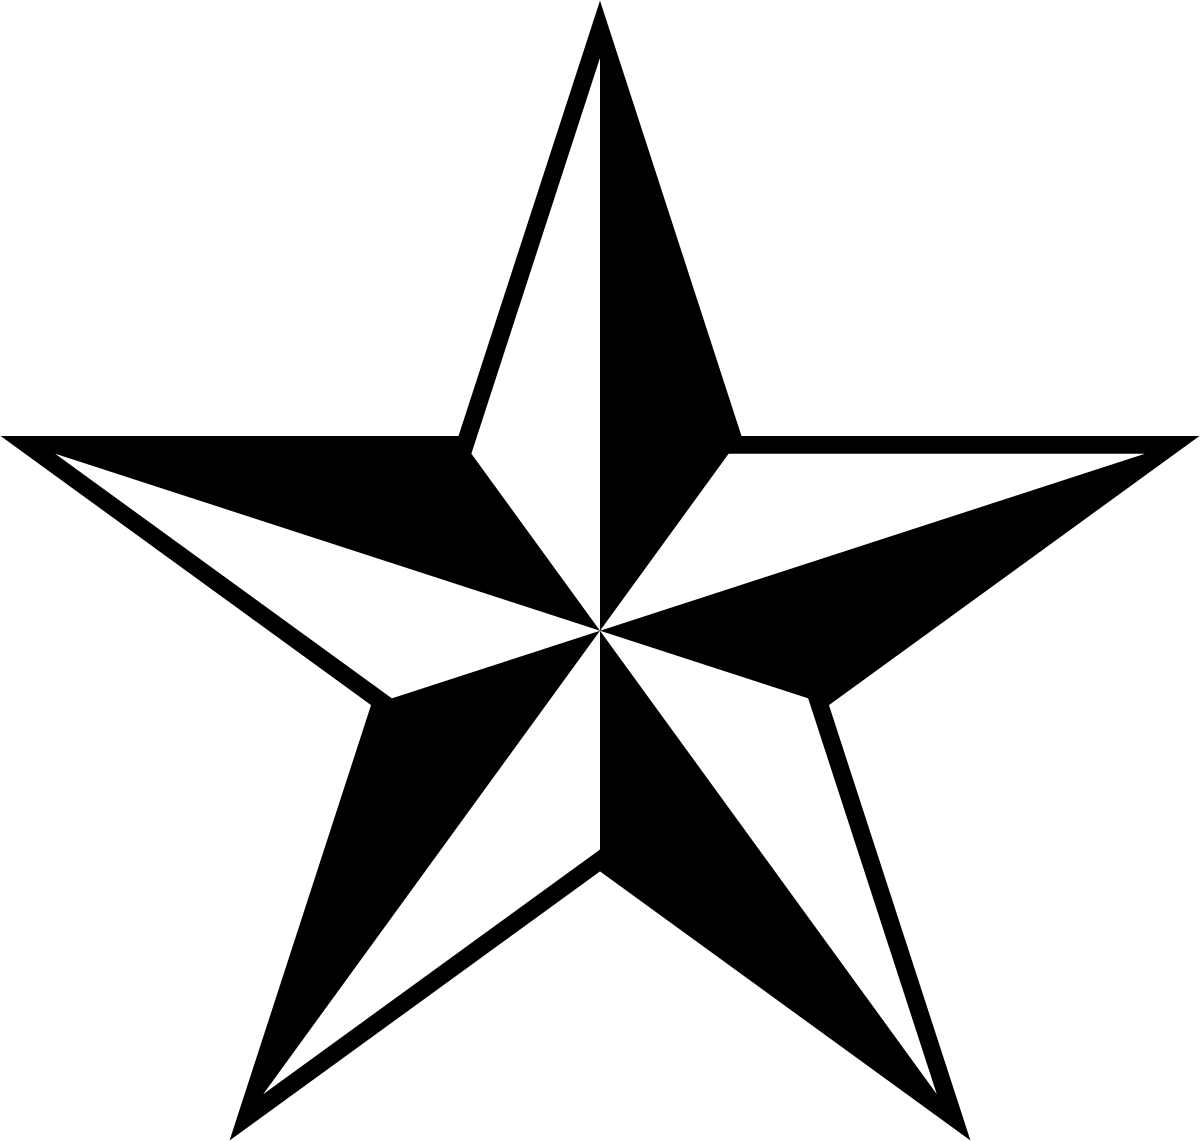 nautical star wikipedia #8700